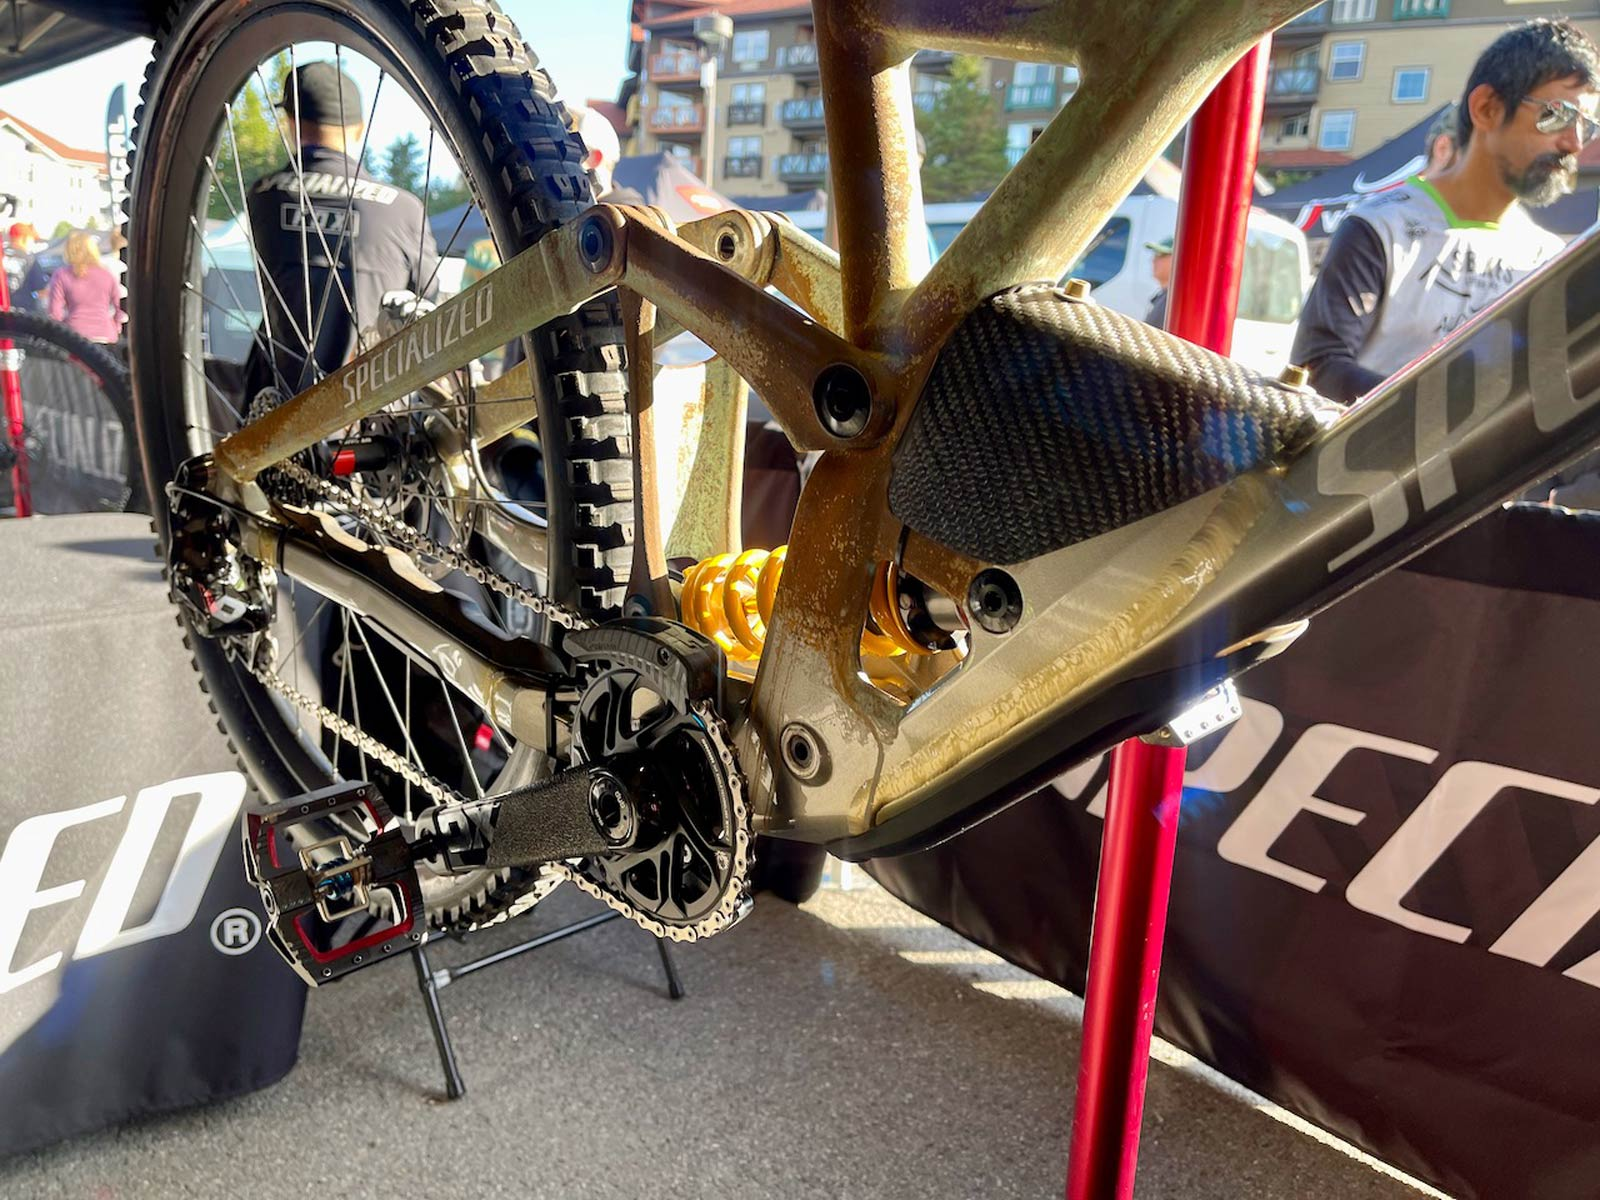 loic bruni specialized demo ohlins prototype active mtb suspension